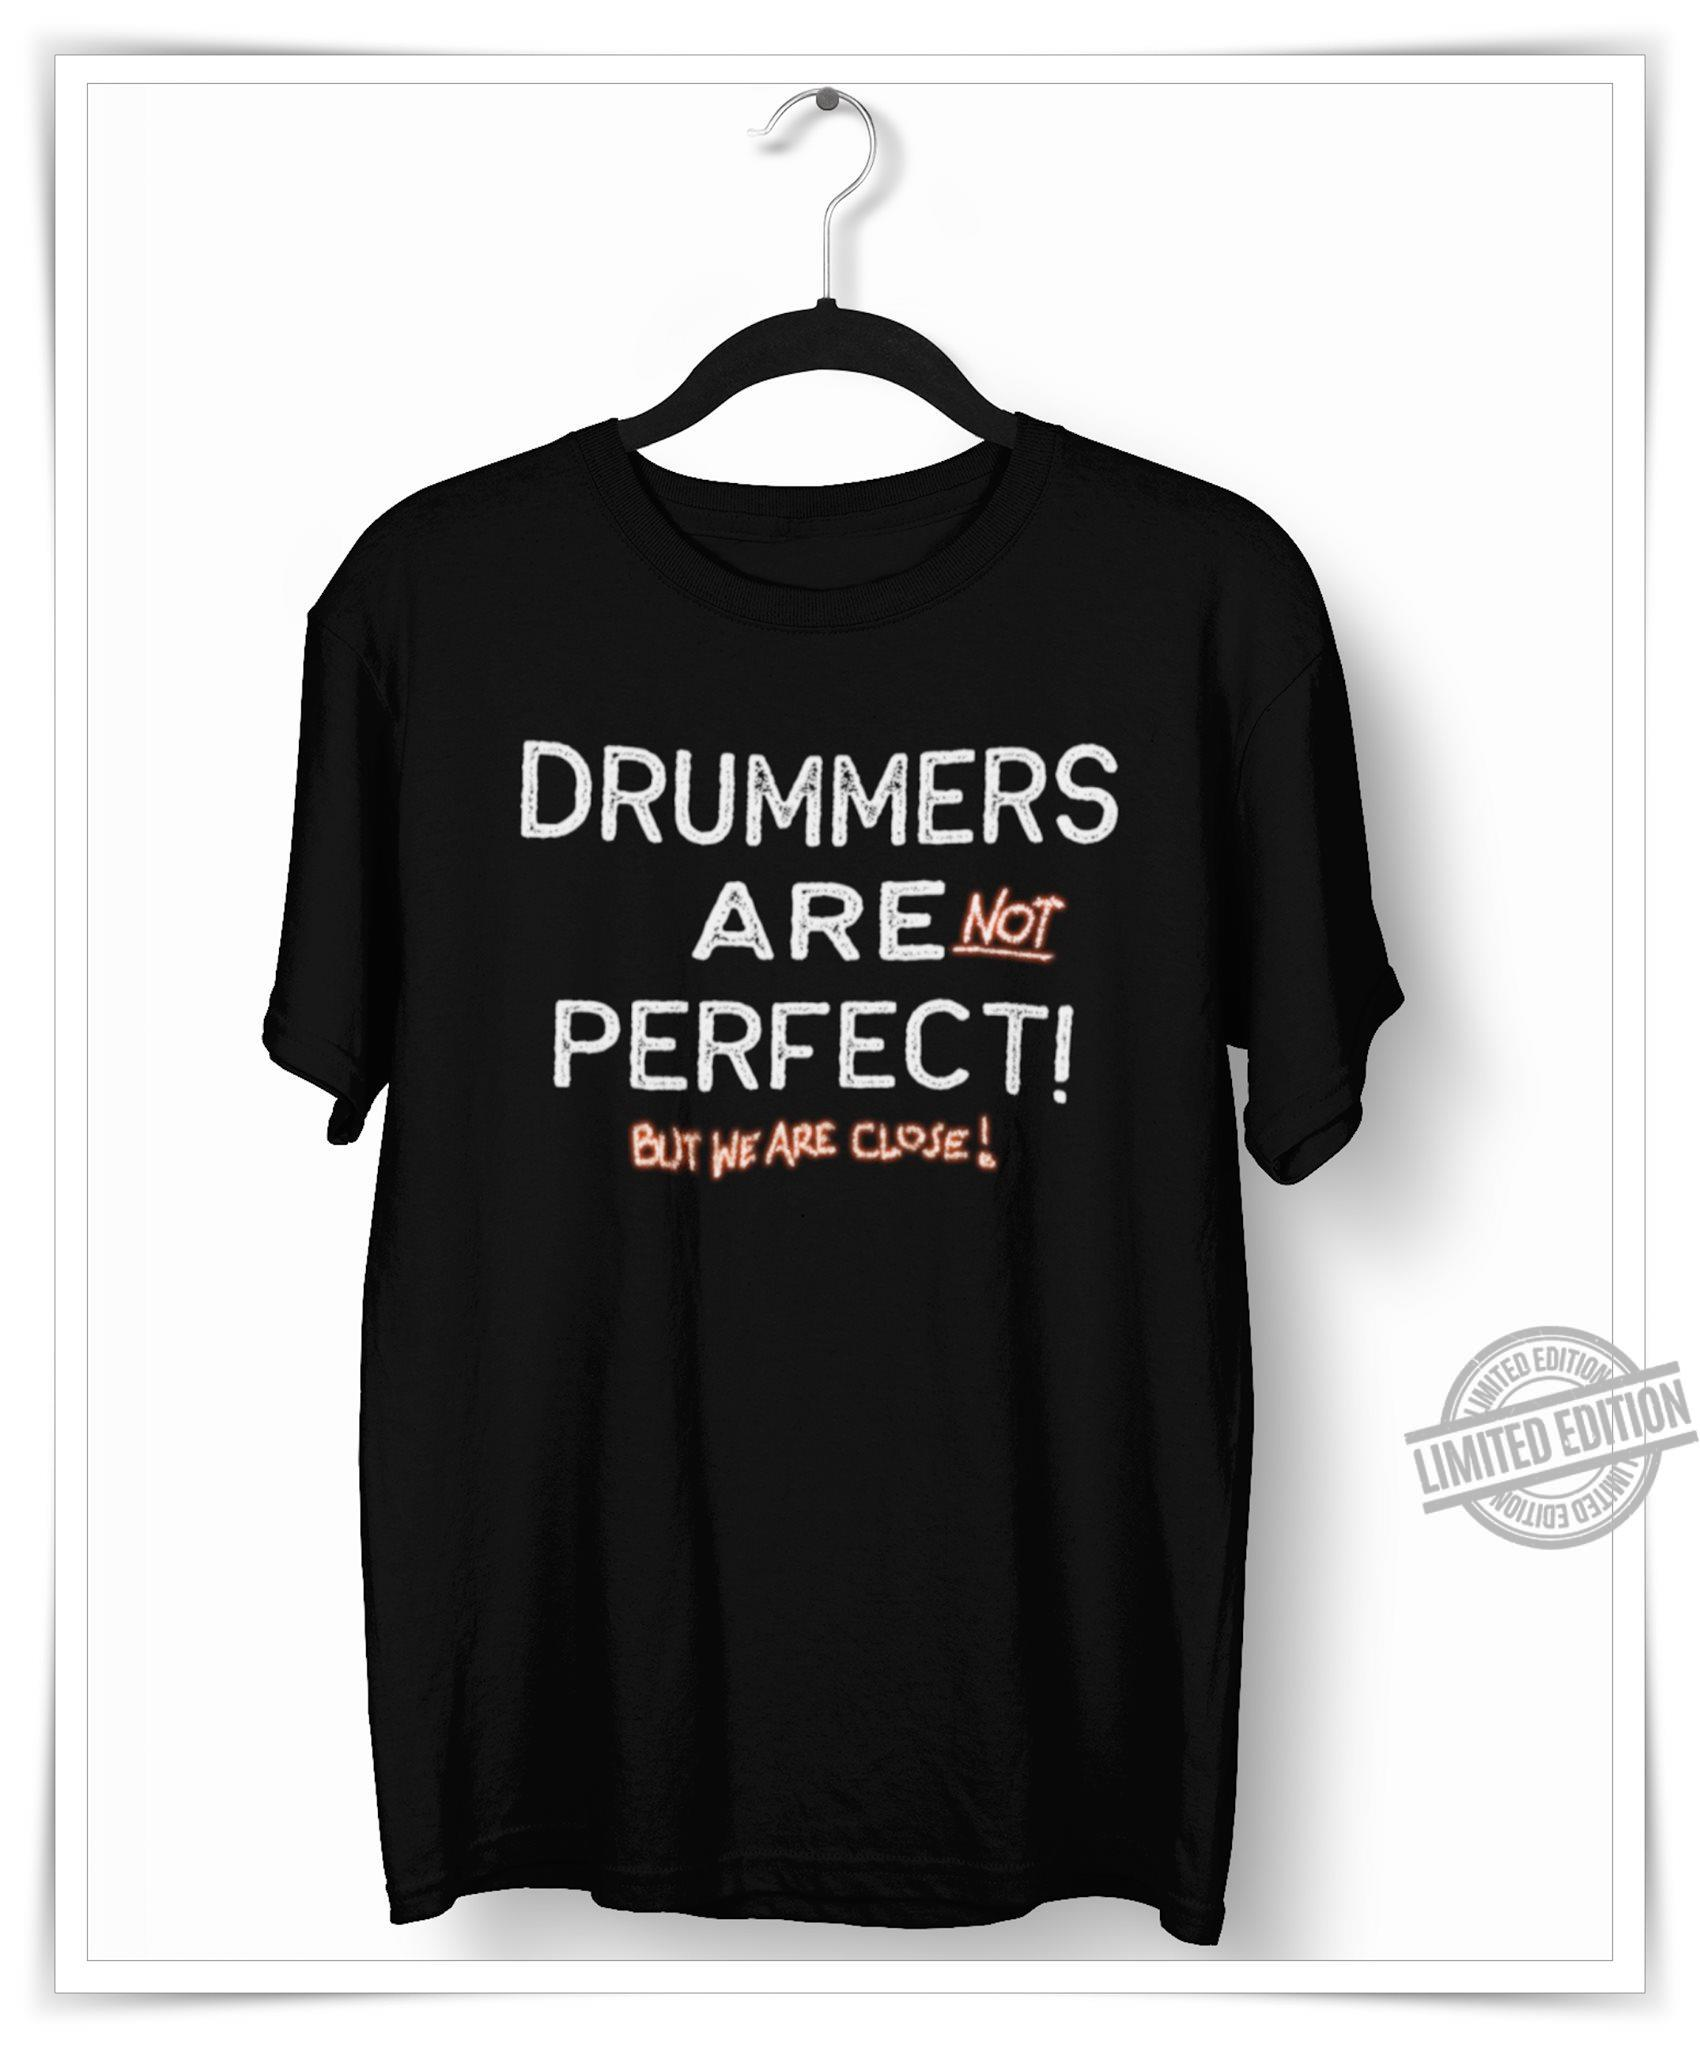 Drummers Are Not Perfect But We Are Close Shirt